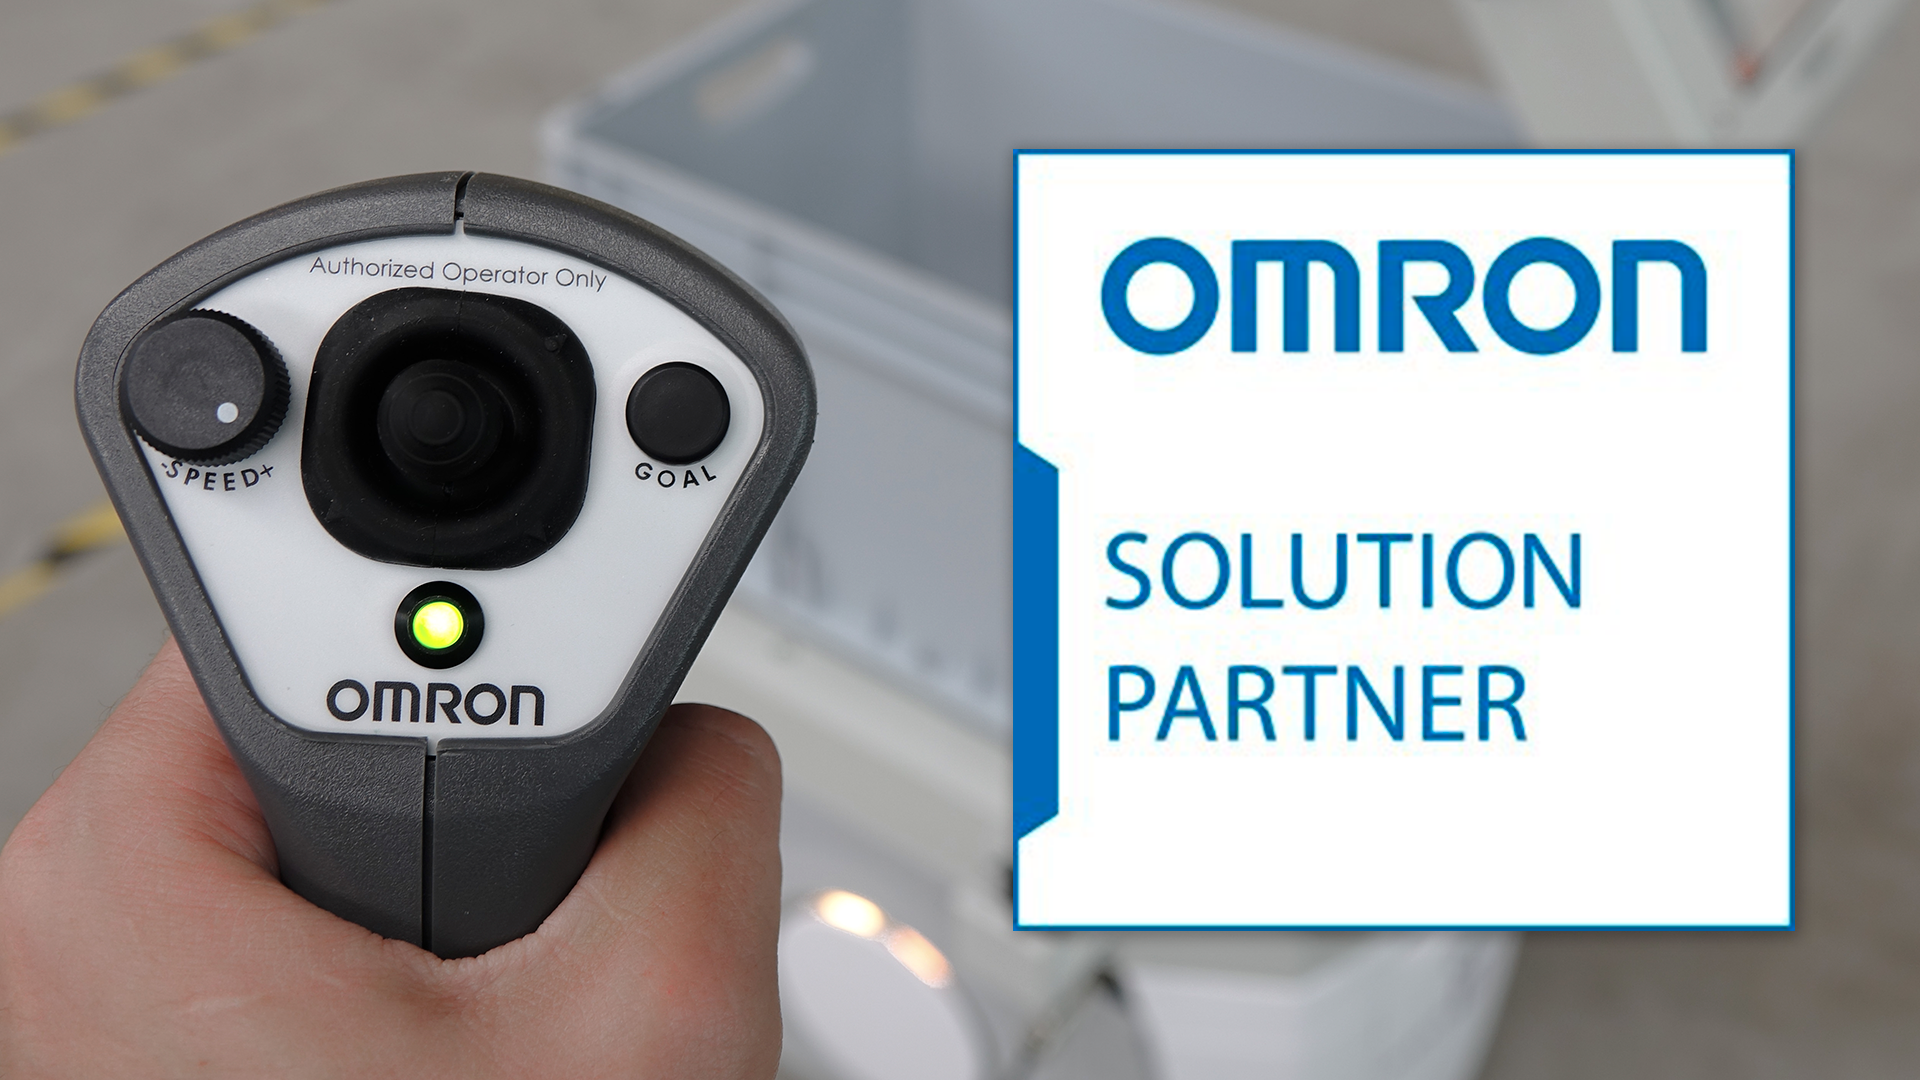 Omron Solution Partner